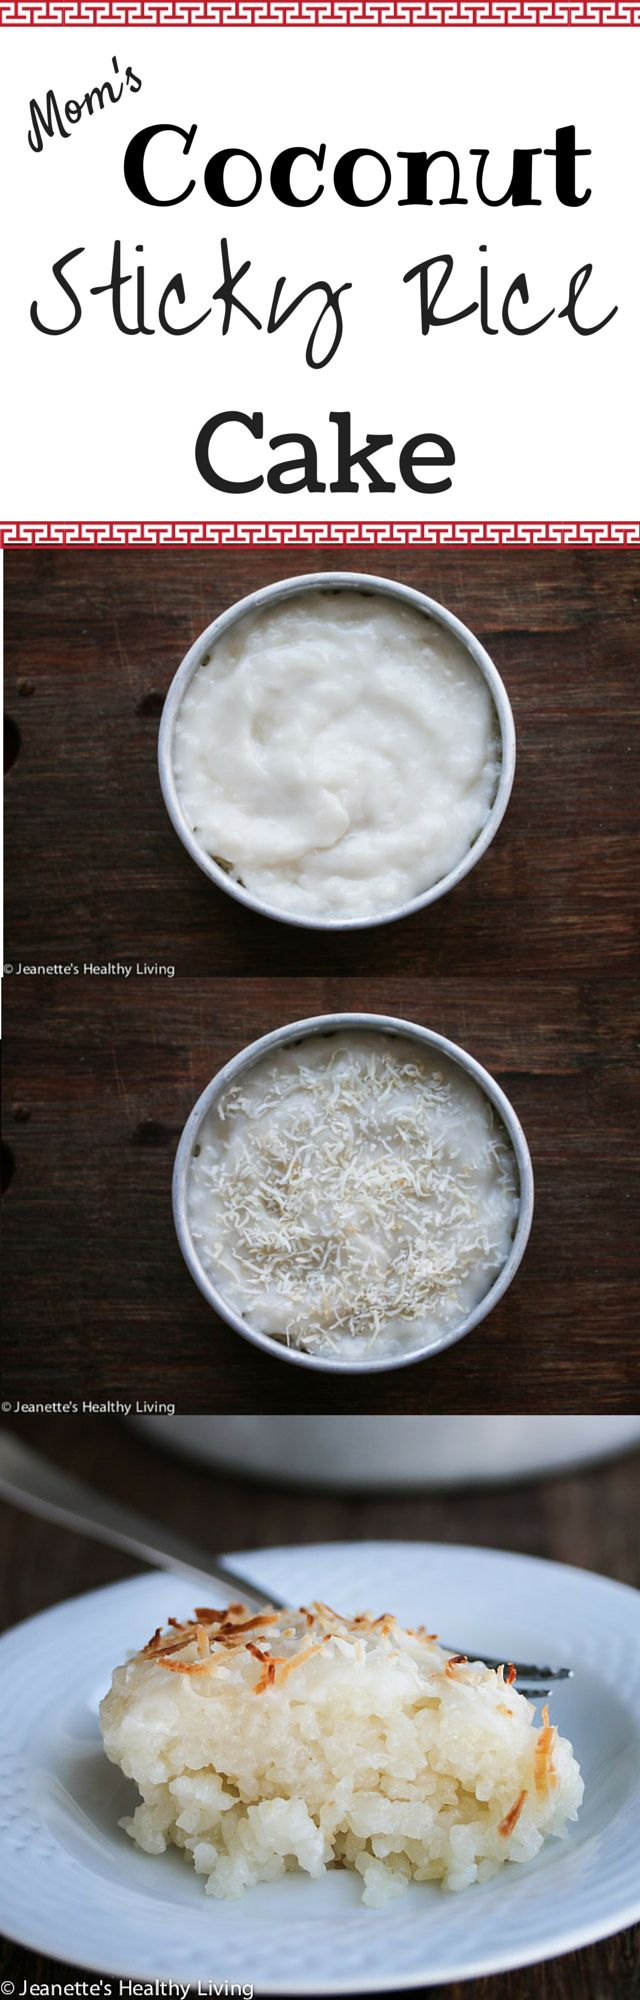 Mom's Coconut Sticky Rice Cake - this is a recipe handed down to me by my mom - it's like rice pudding and is perfect for celebrating Chinese New Year ~ http://jeanetteshealthyliving.com